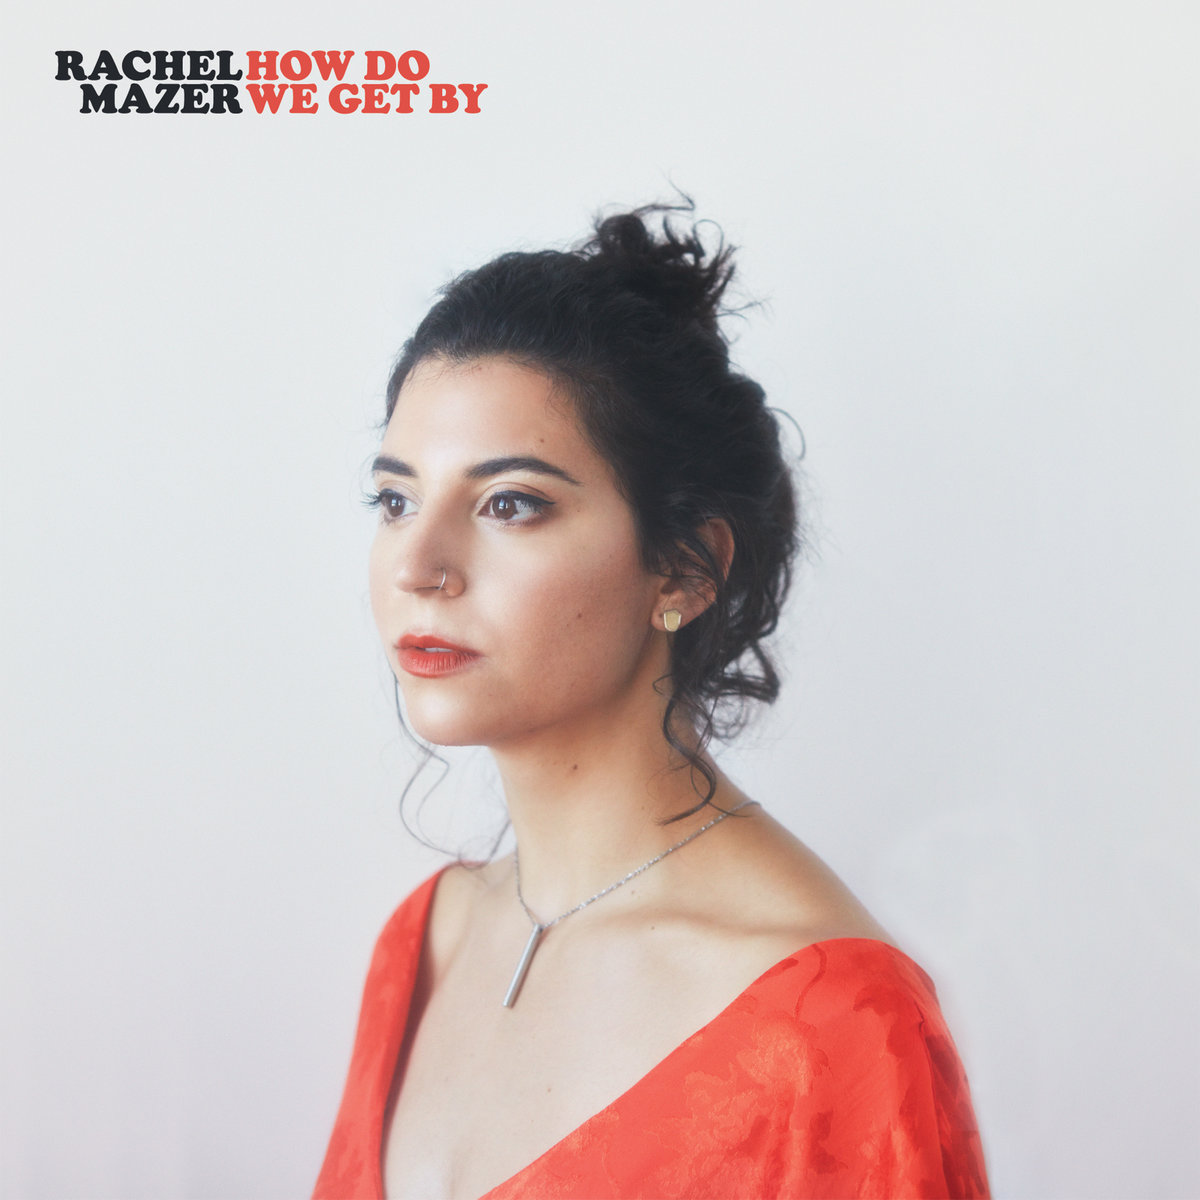 Rachel Mazer How Do We Get By.jpg